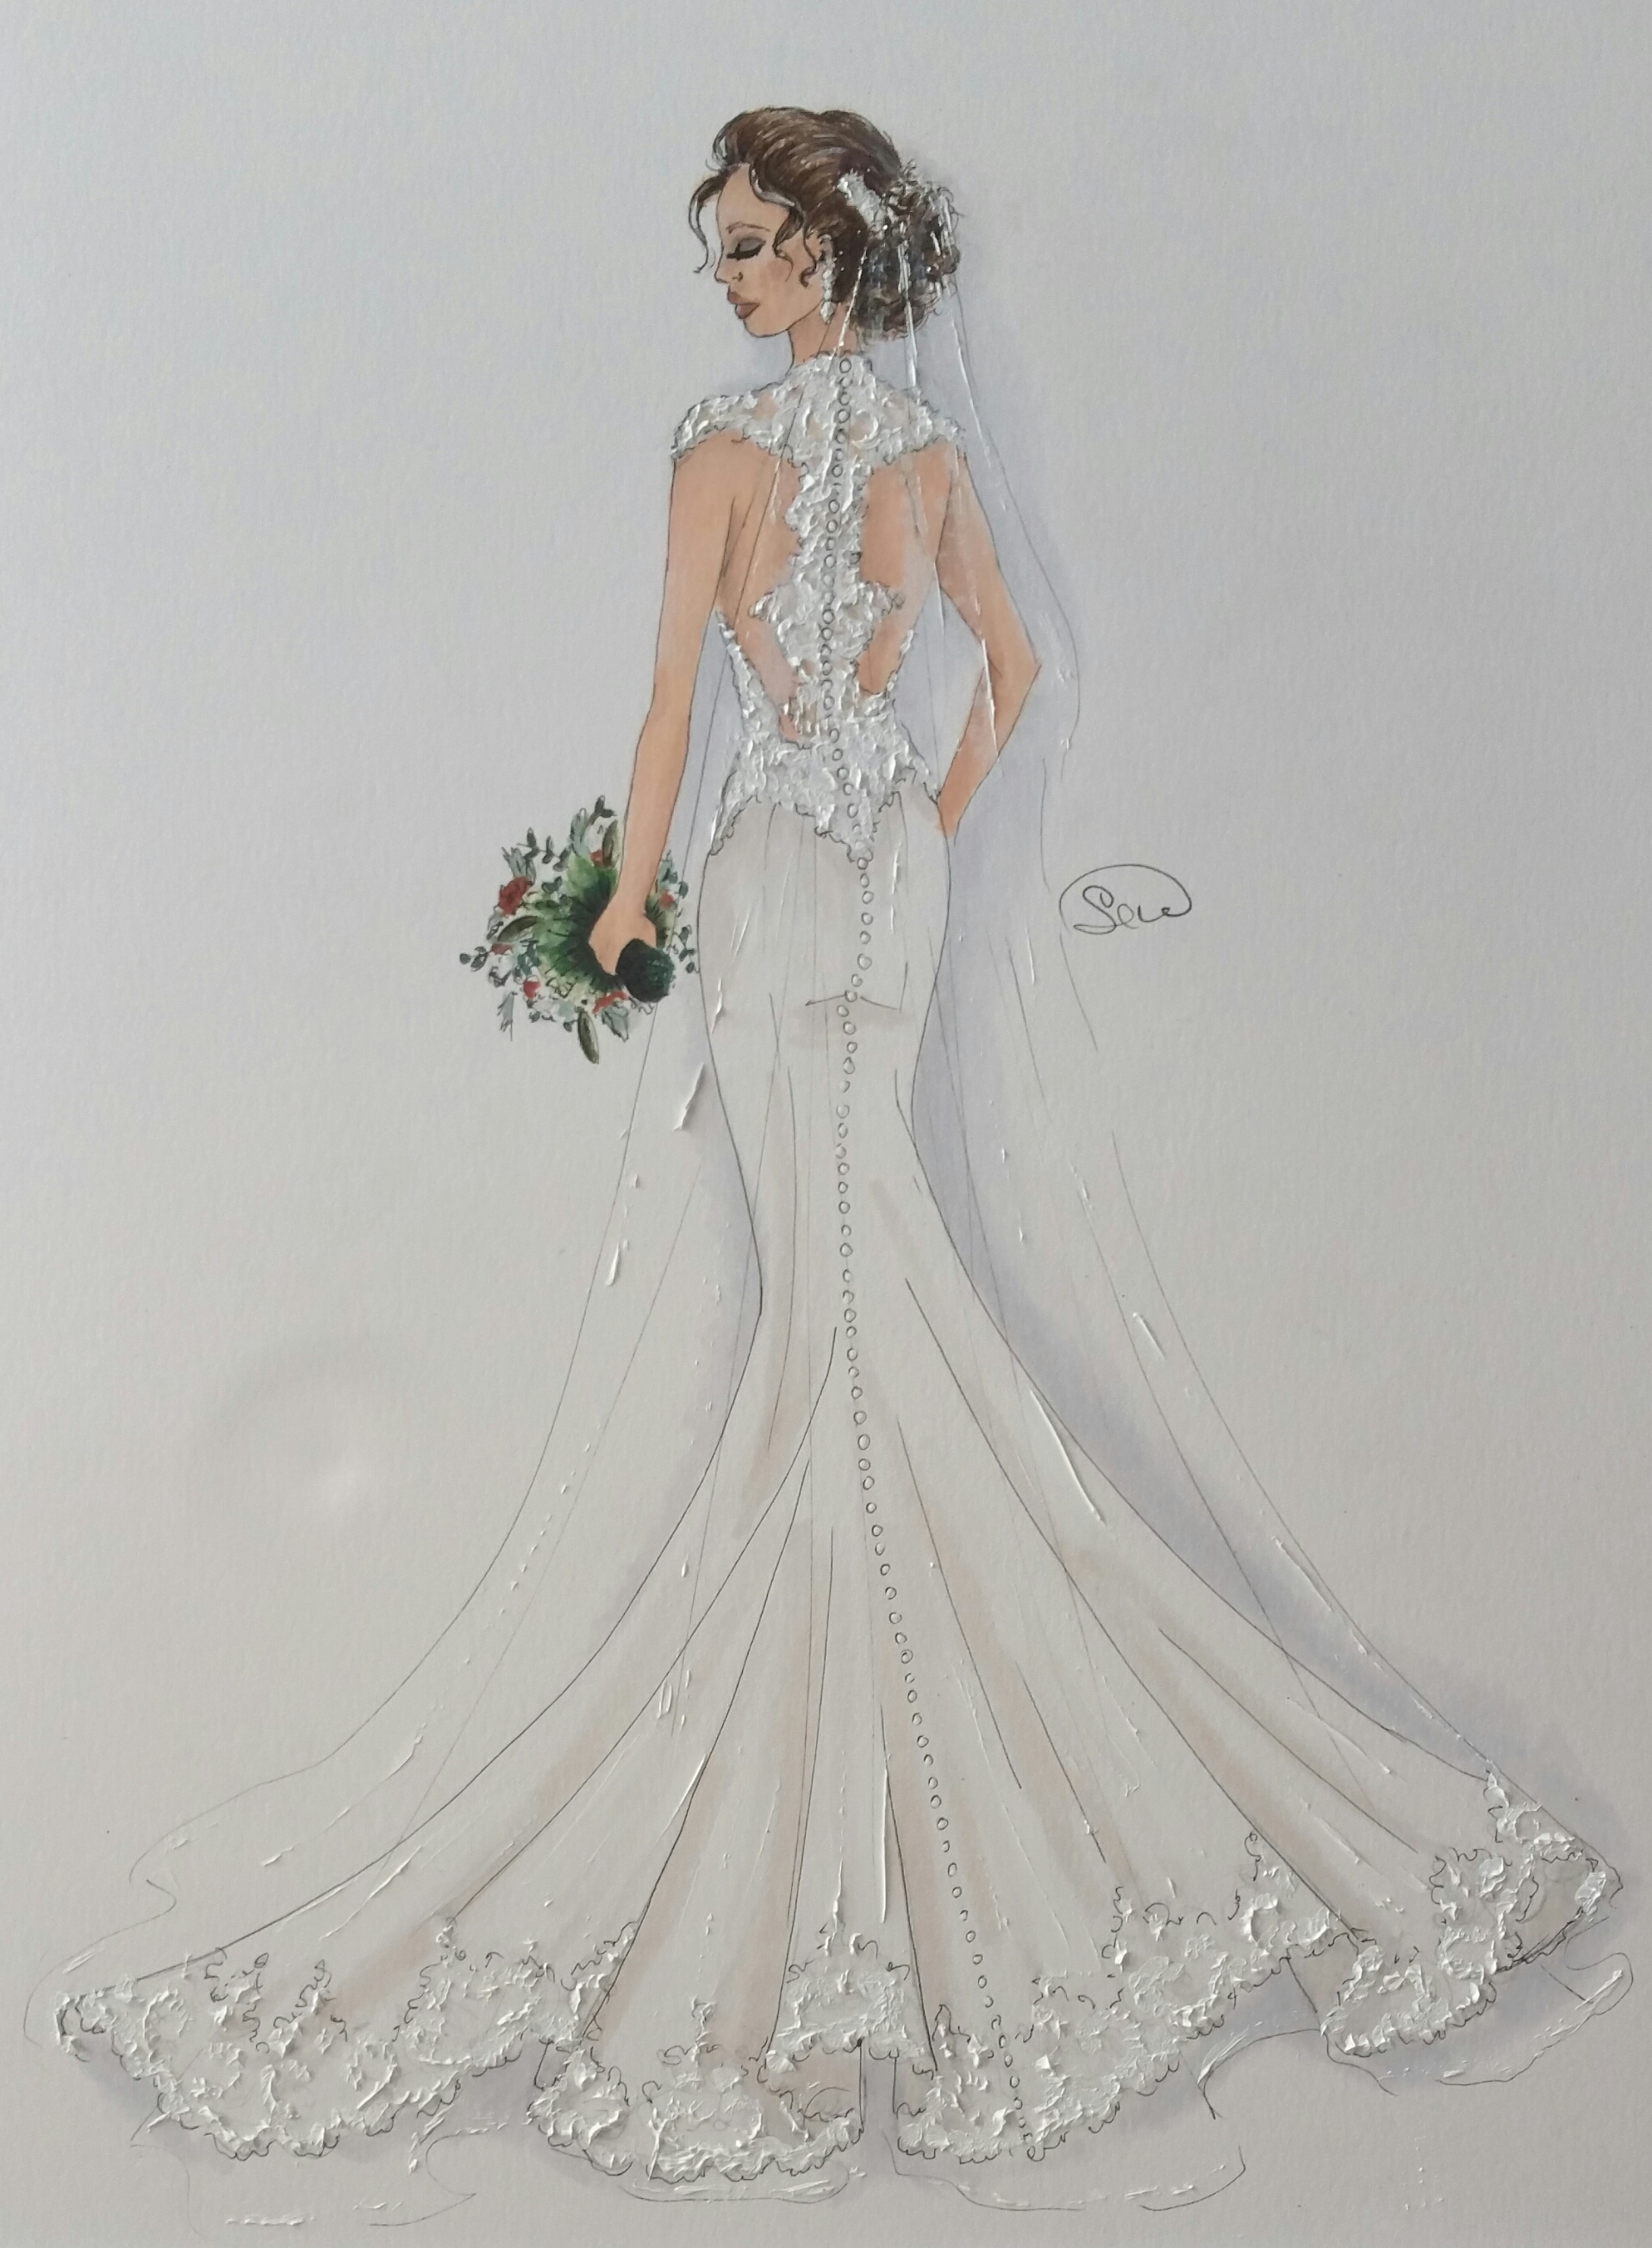 Couture by Sadie Custom Wedding Gowns at All Brides Beautiful